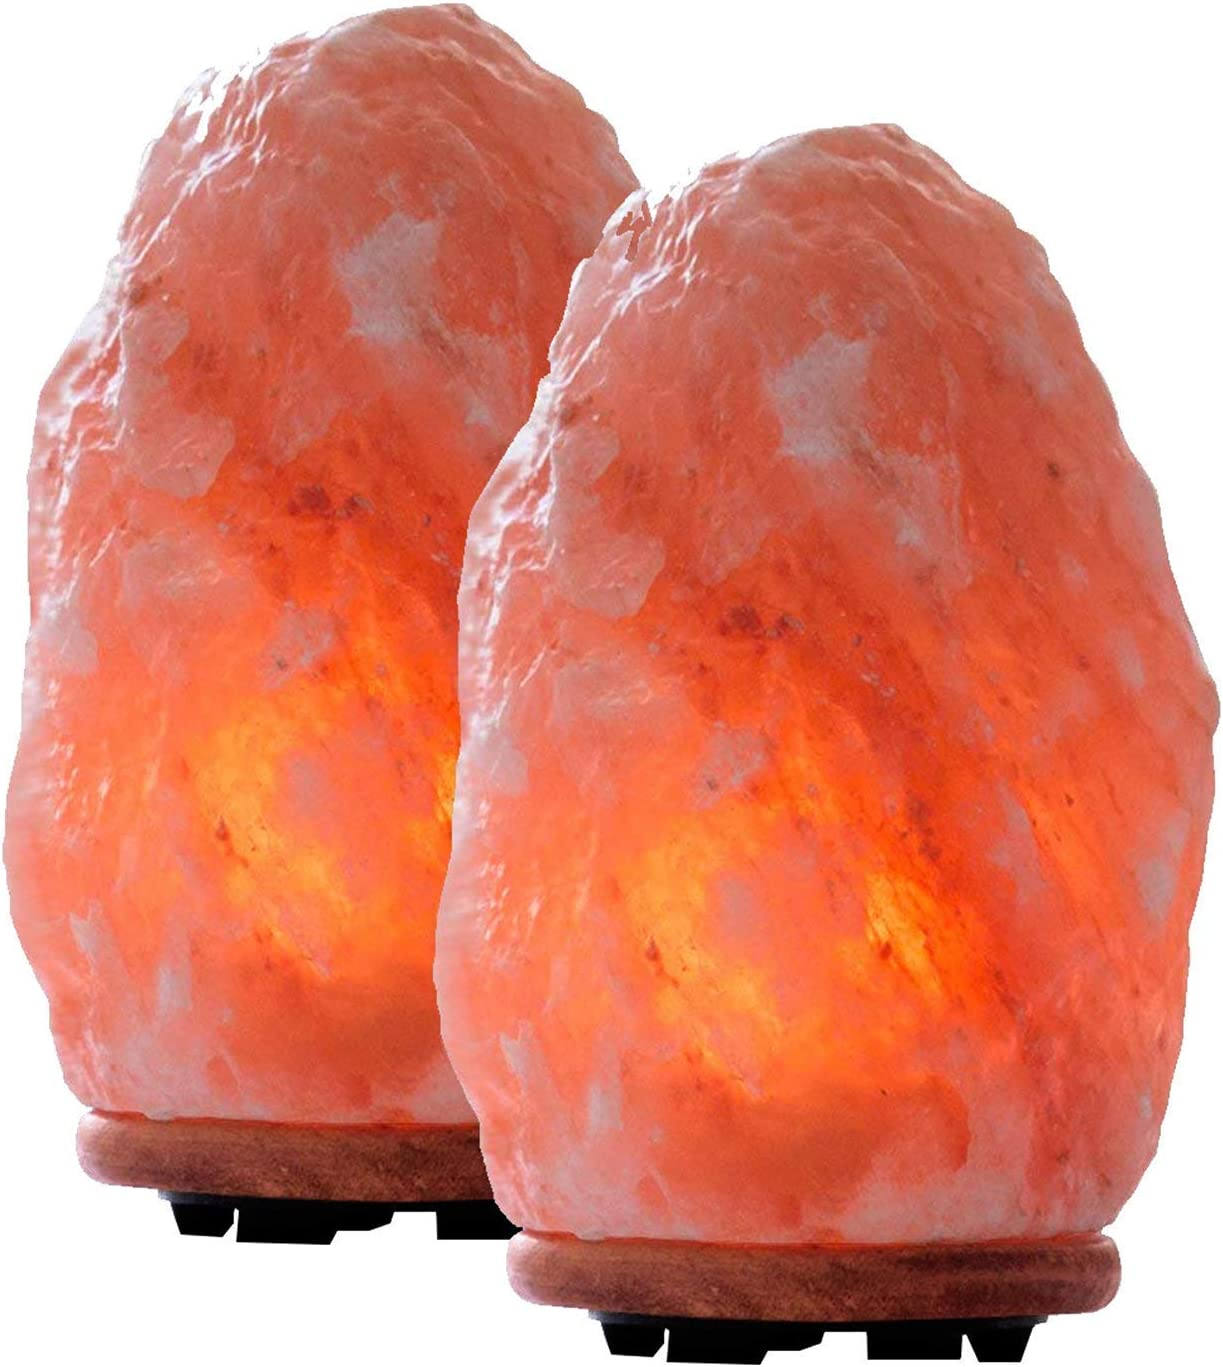 Himalayan Glow 1004B Extra Heavy Large Himalayan Salt Lamp, 15 to 20 lbs each